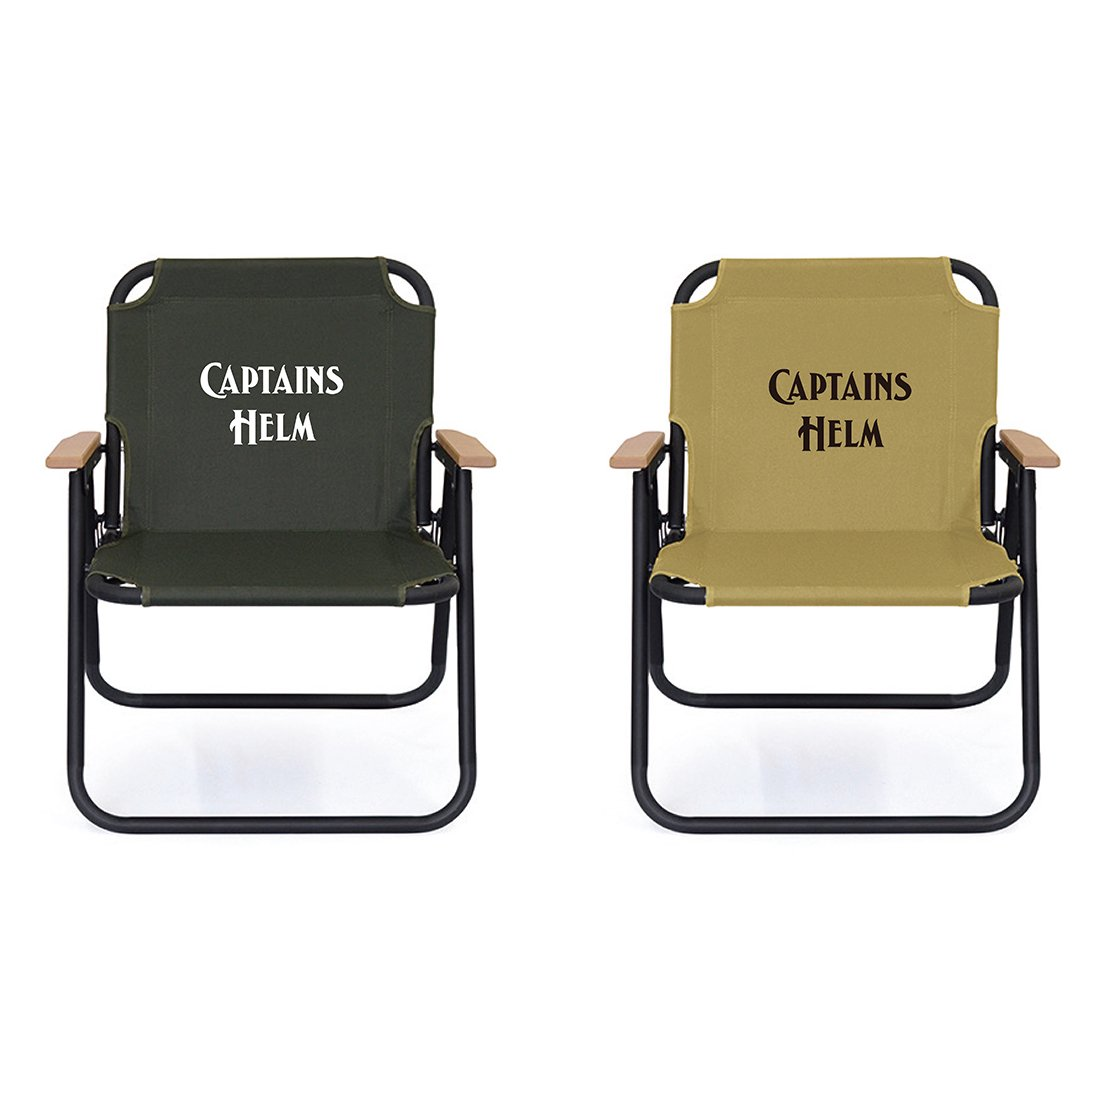 CAPTAINS HELM #CAMP CHAIR